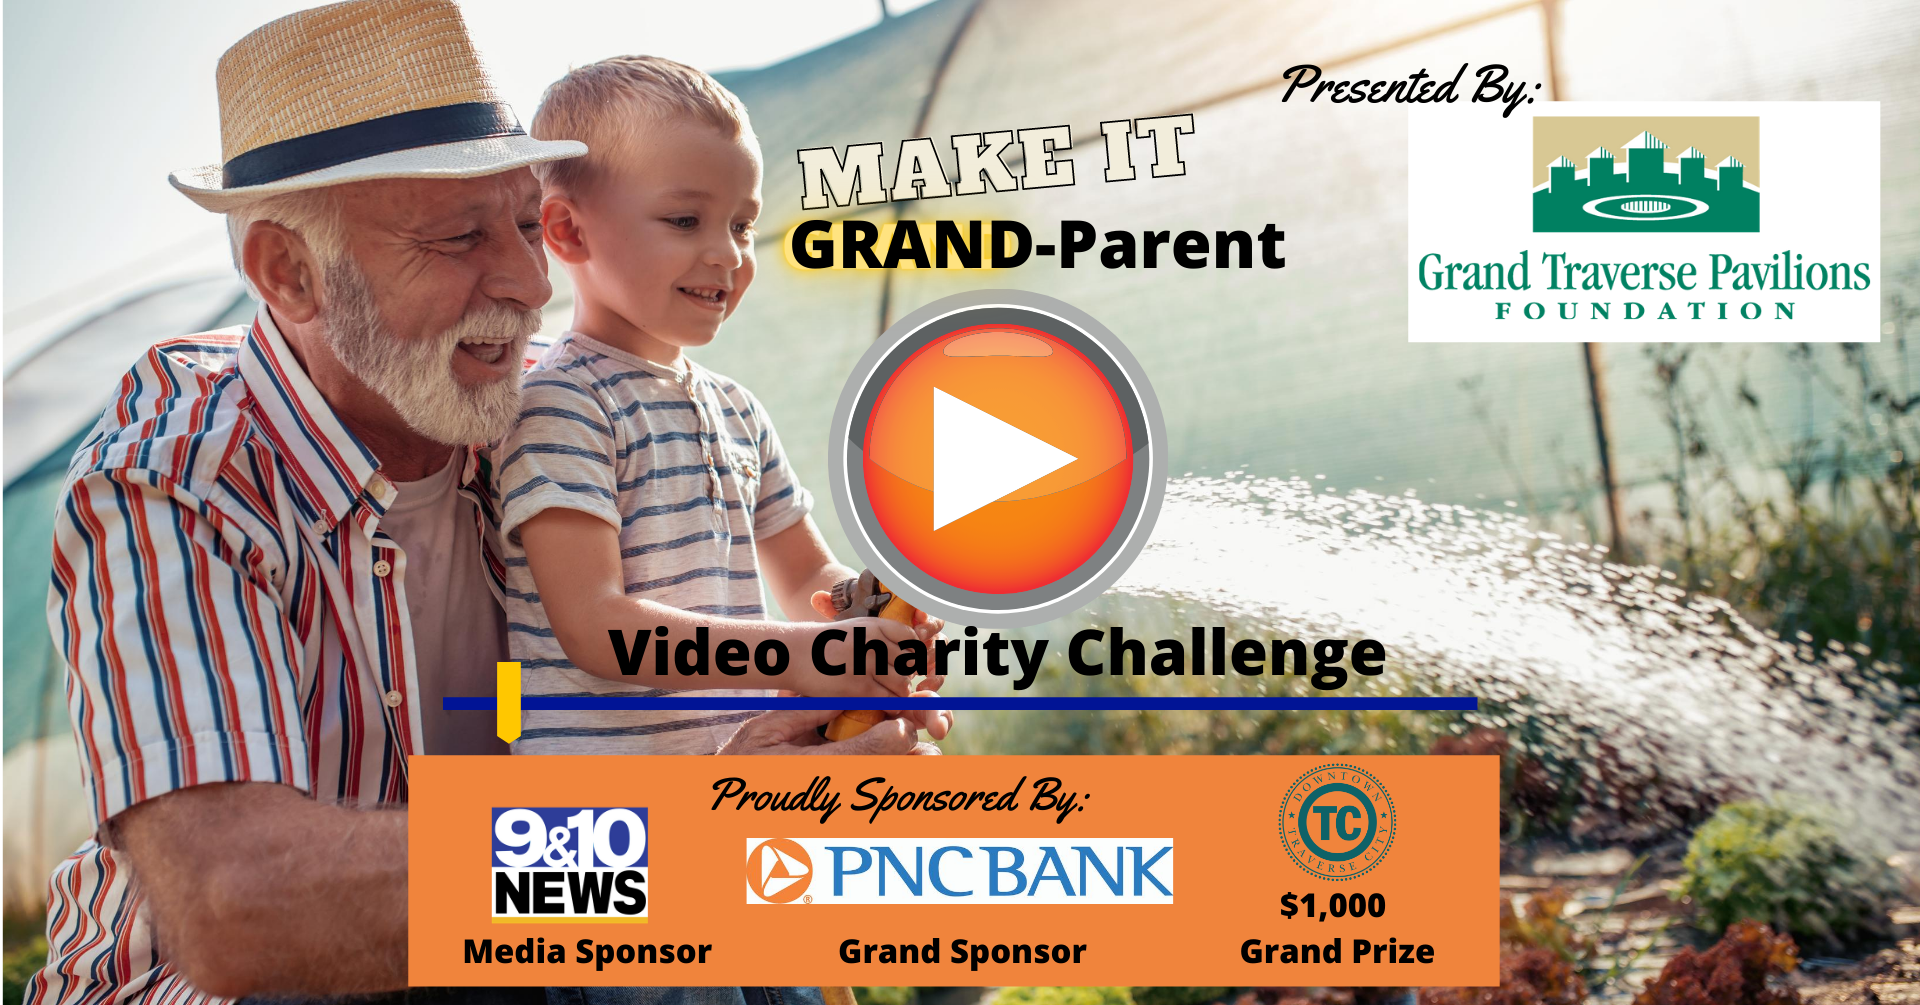 MAKE IT GRAND-parent Video Charity Challenge